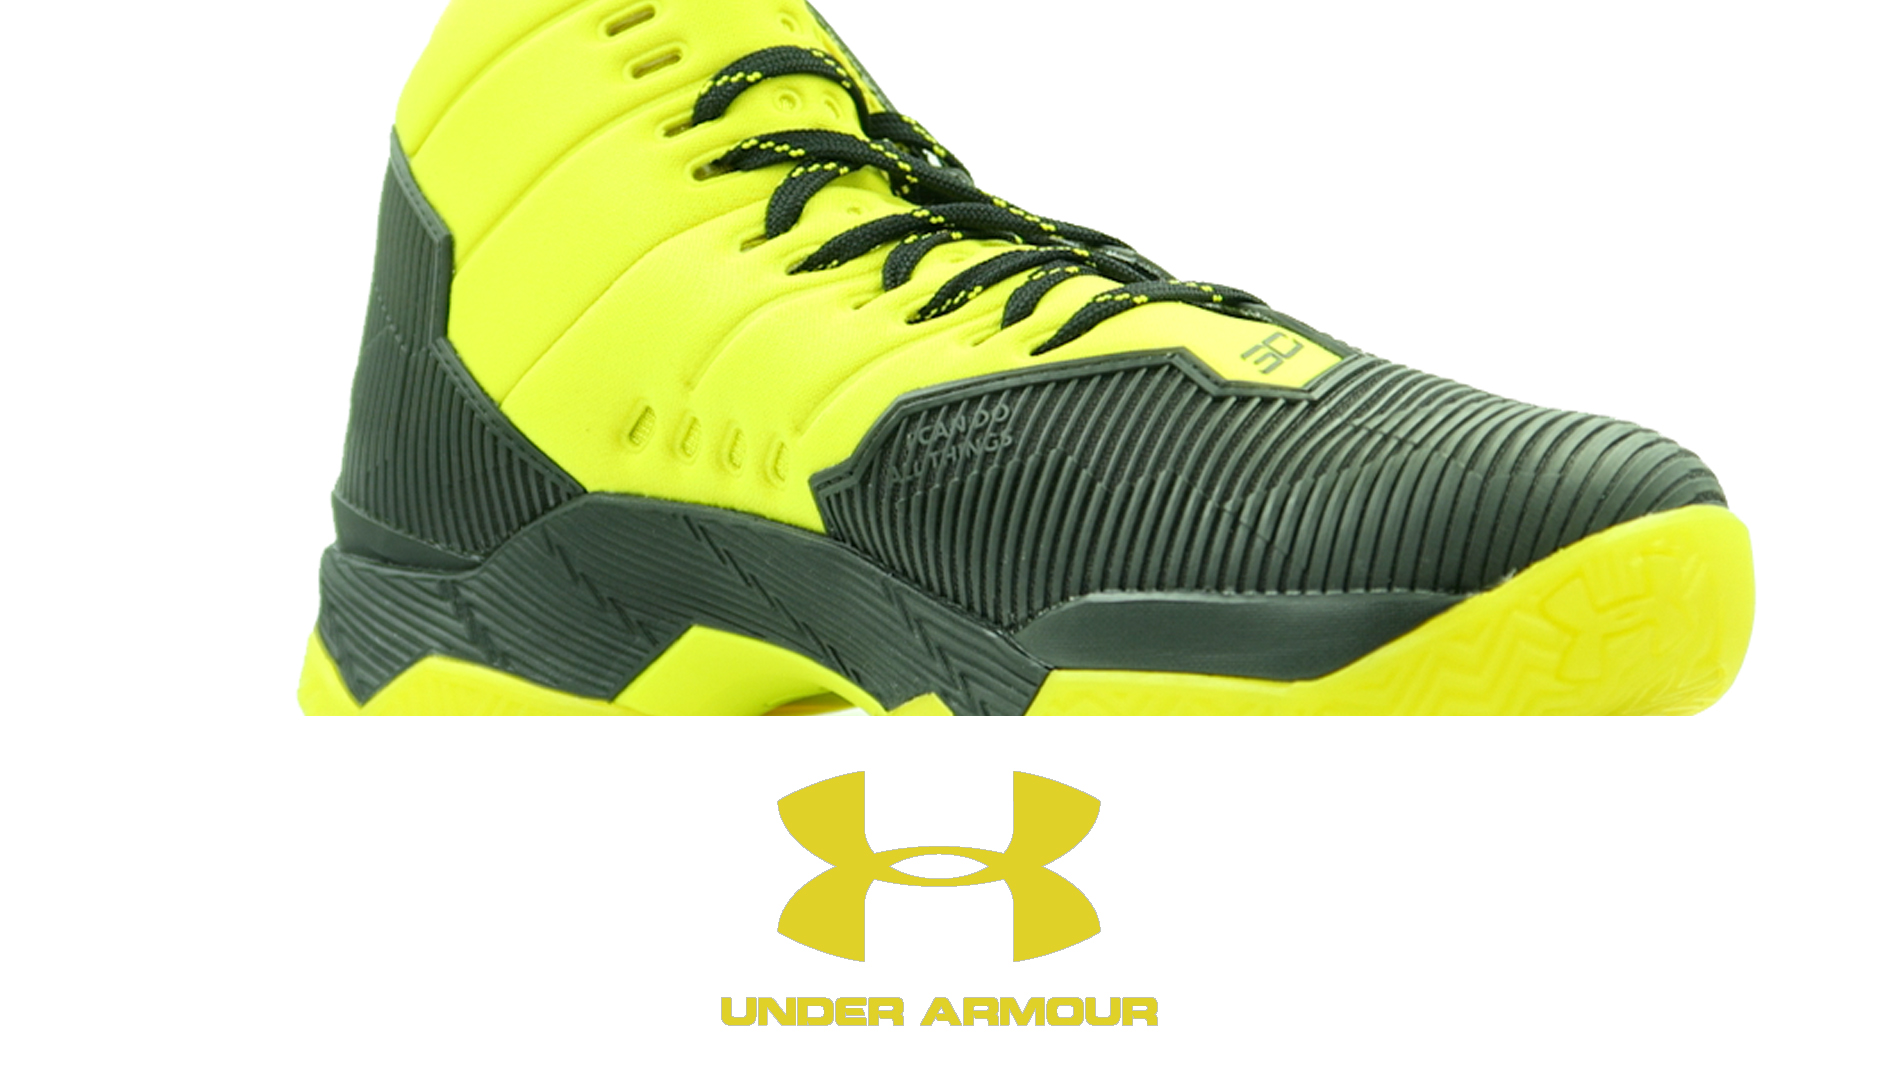 Under Armour Curry 2 5 Black Taxi | Detailed Look and Review Main